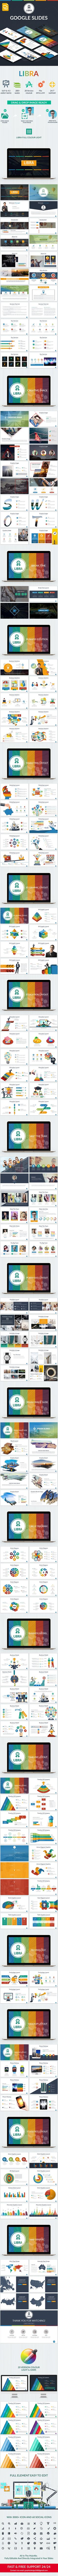 Libra #Google #Slides Presentation Template - Google Slides #Presentation #Templates Download here:  https://graphicriver.net/item/libra-google-slides-presentation-template/18699520?ref=alena994